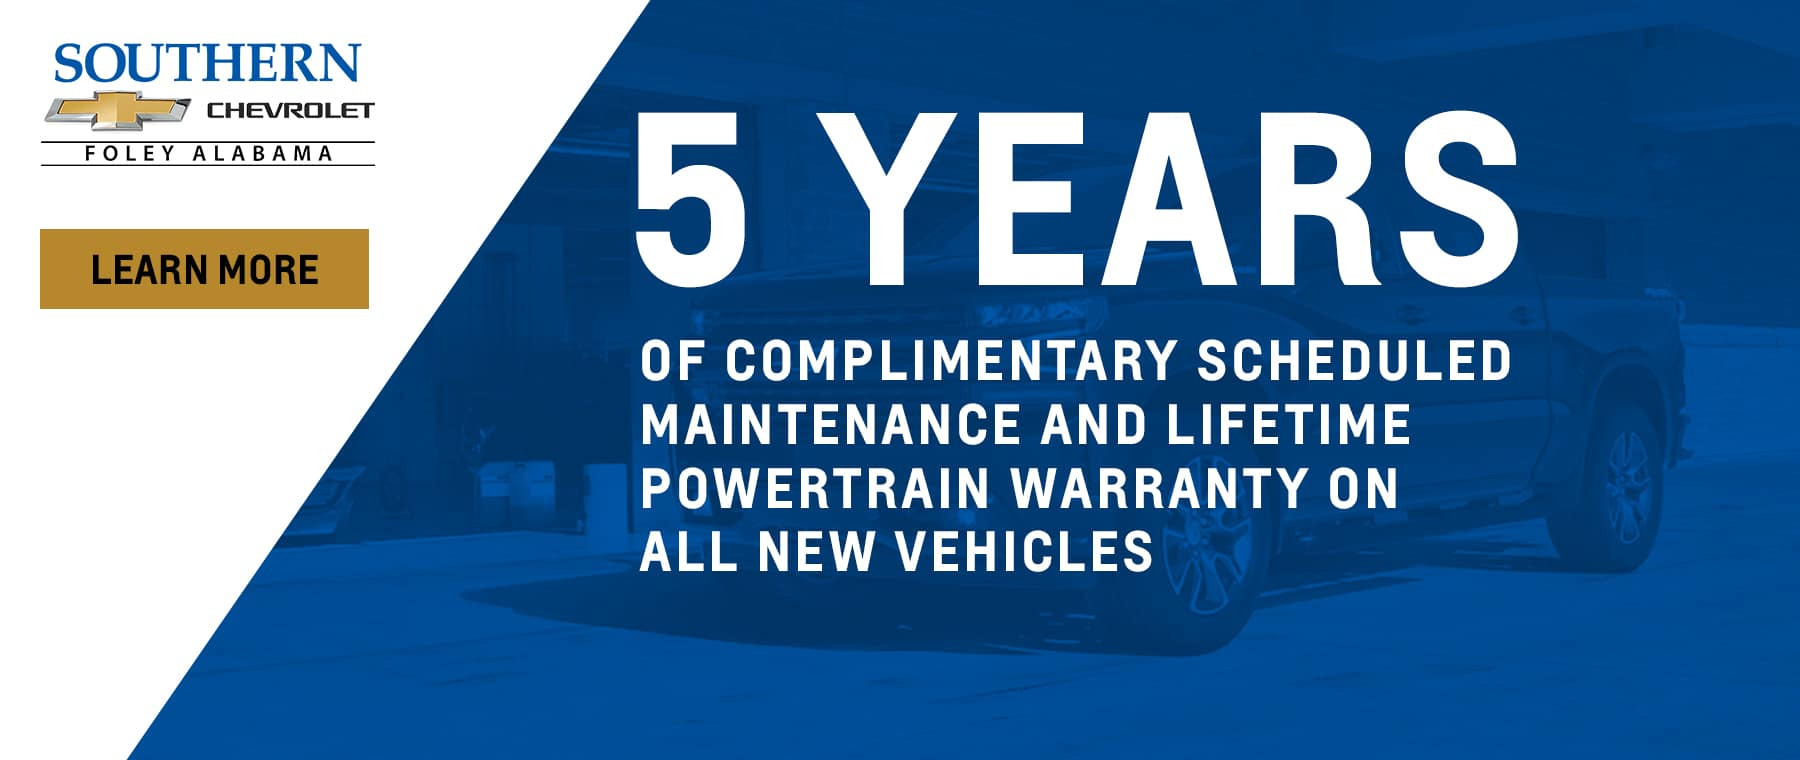 5 Years Free Maintenance Southern Chevrolet